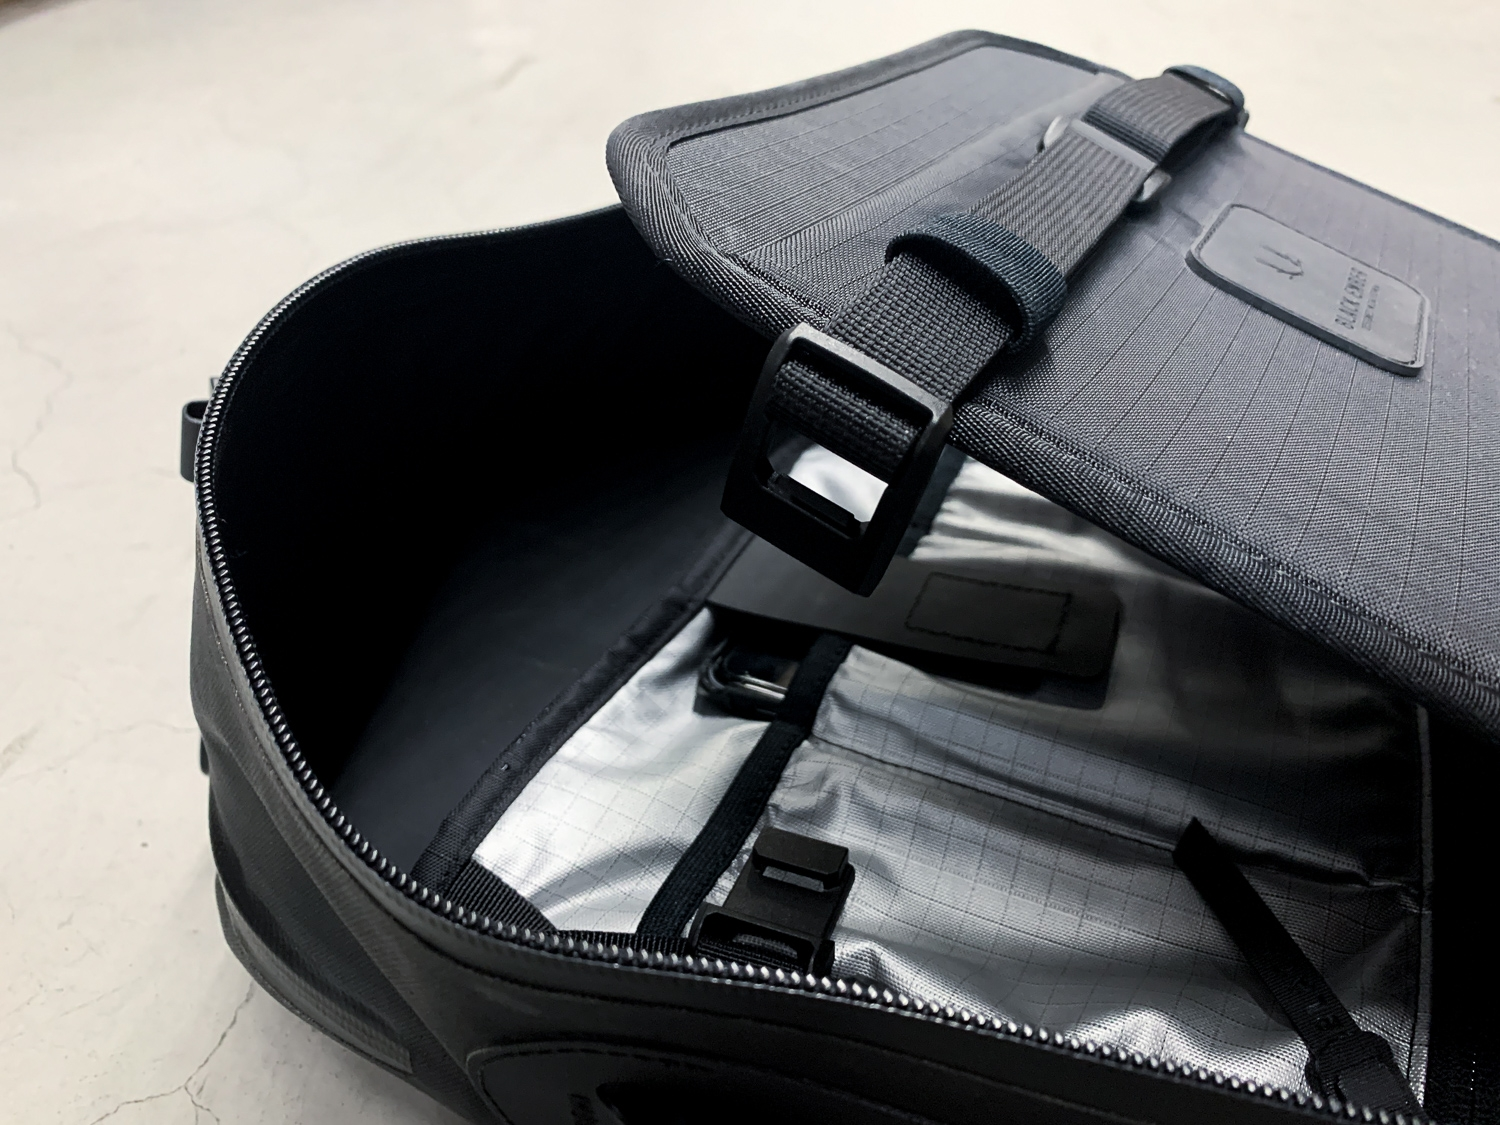 The black minimalist backpack comes from Black Ember with a compression divider to keep things flat and organized.